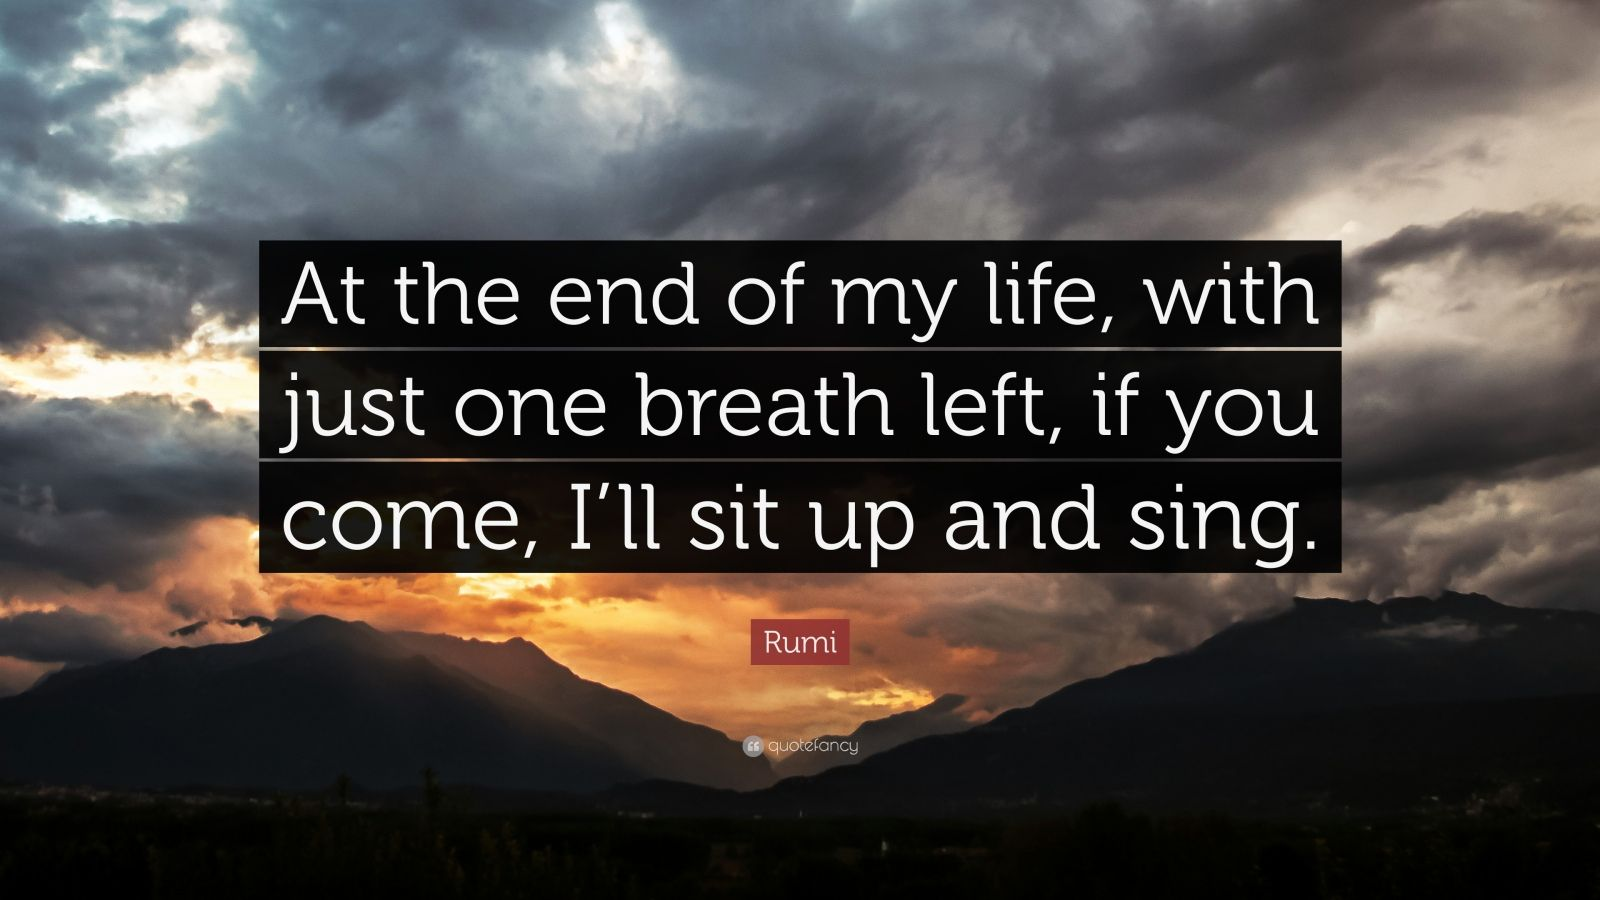 Rumi Quotes On Life Classy Rumi Quotes 100 Wallpapers  Quotefancy